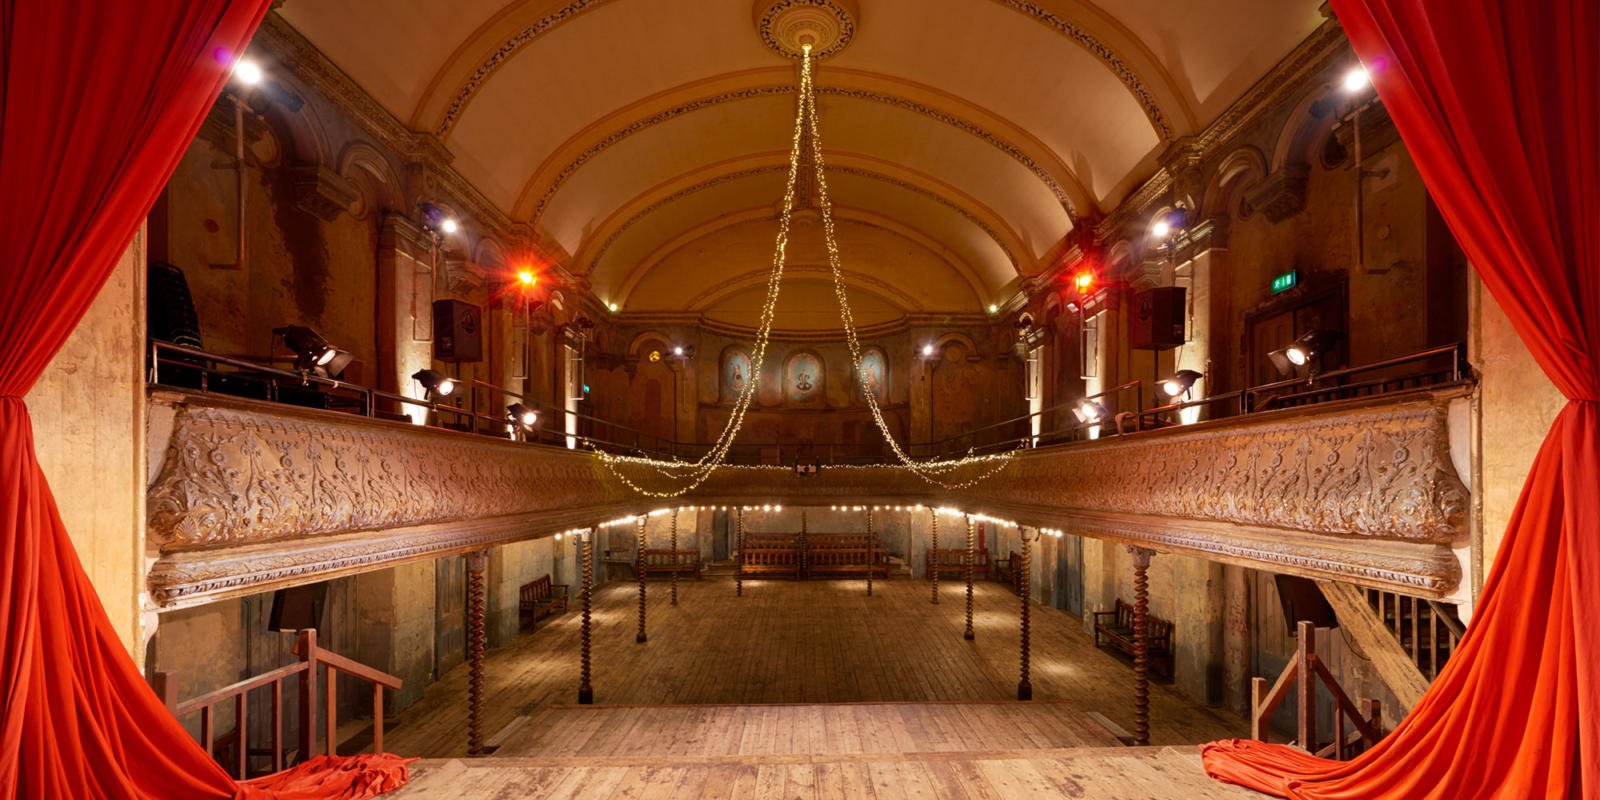 Wilton's music hall view from stage (c) Peter Dazeley